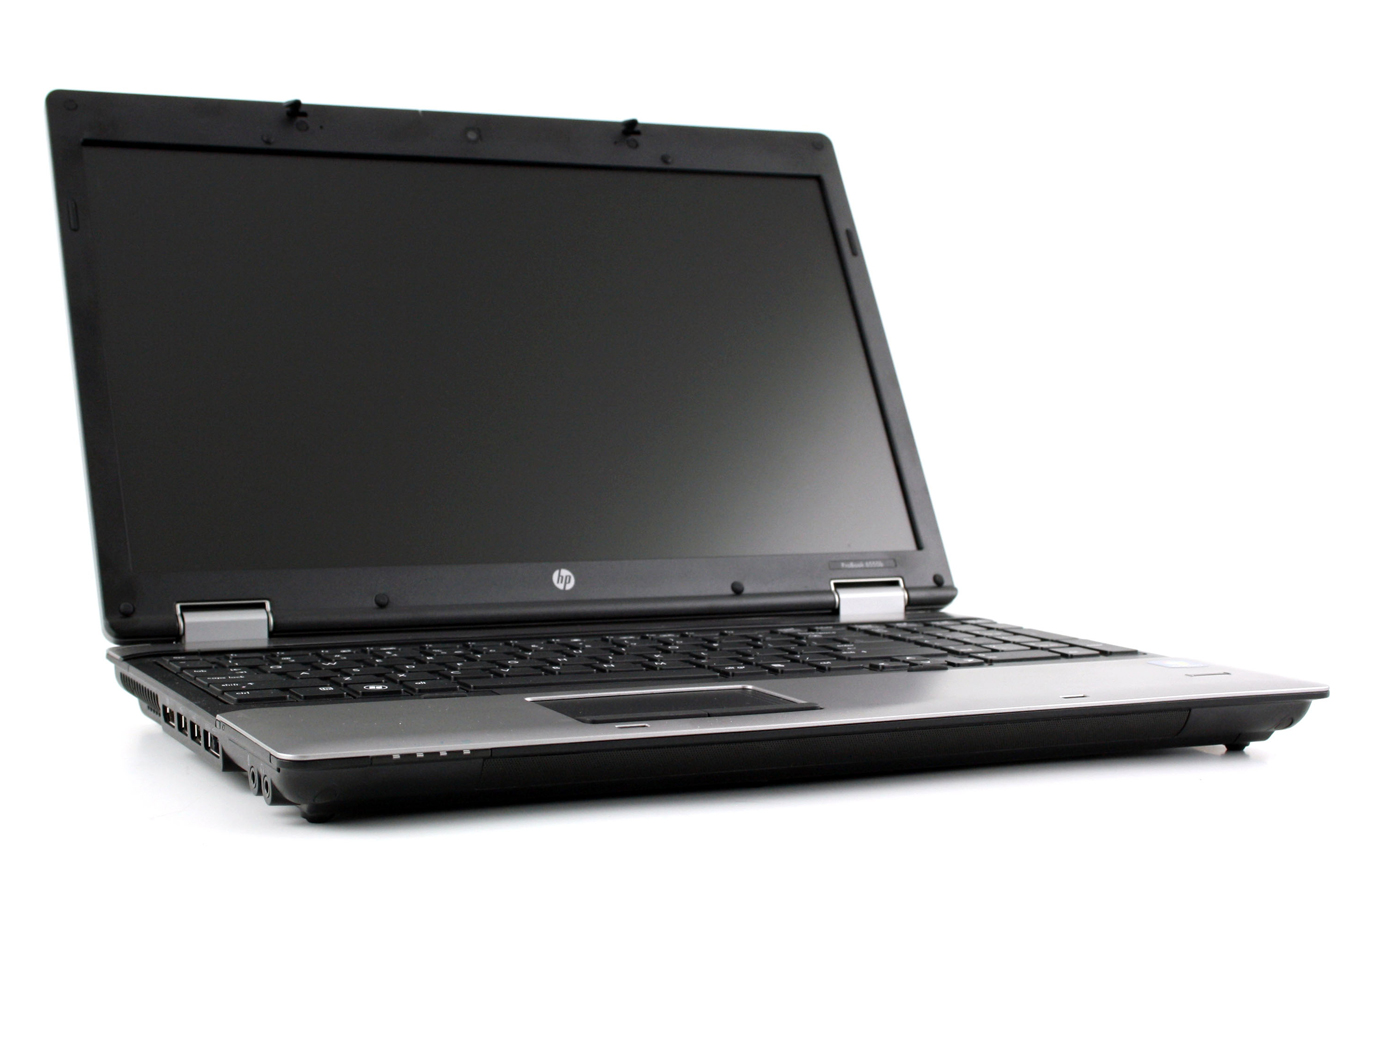 HP G62-125SL NOTEBOOK LSI HDA MODEM WINDOWS 7 DRIVERS DOWNLOAD